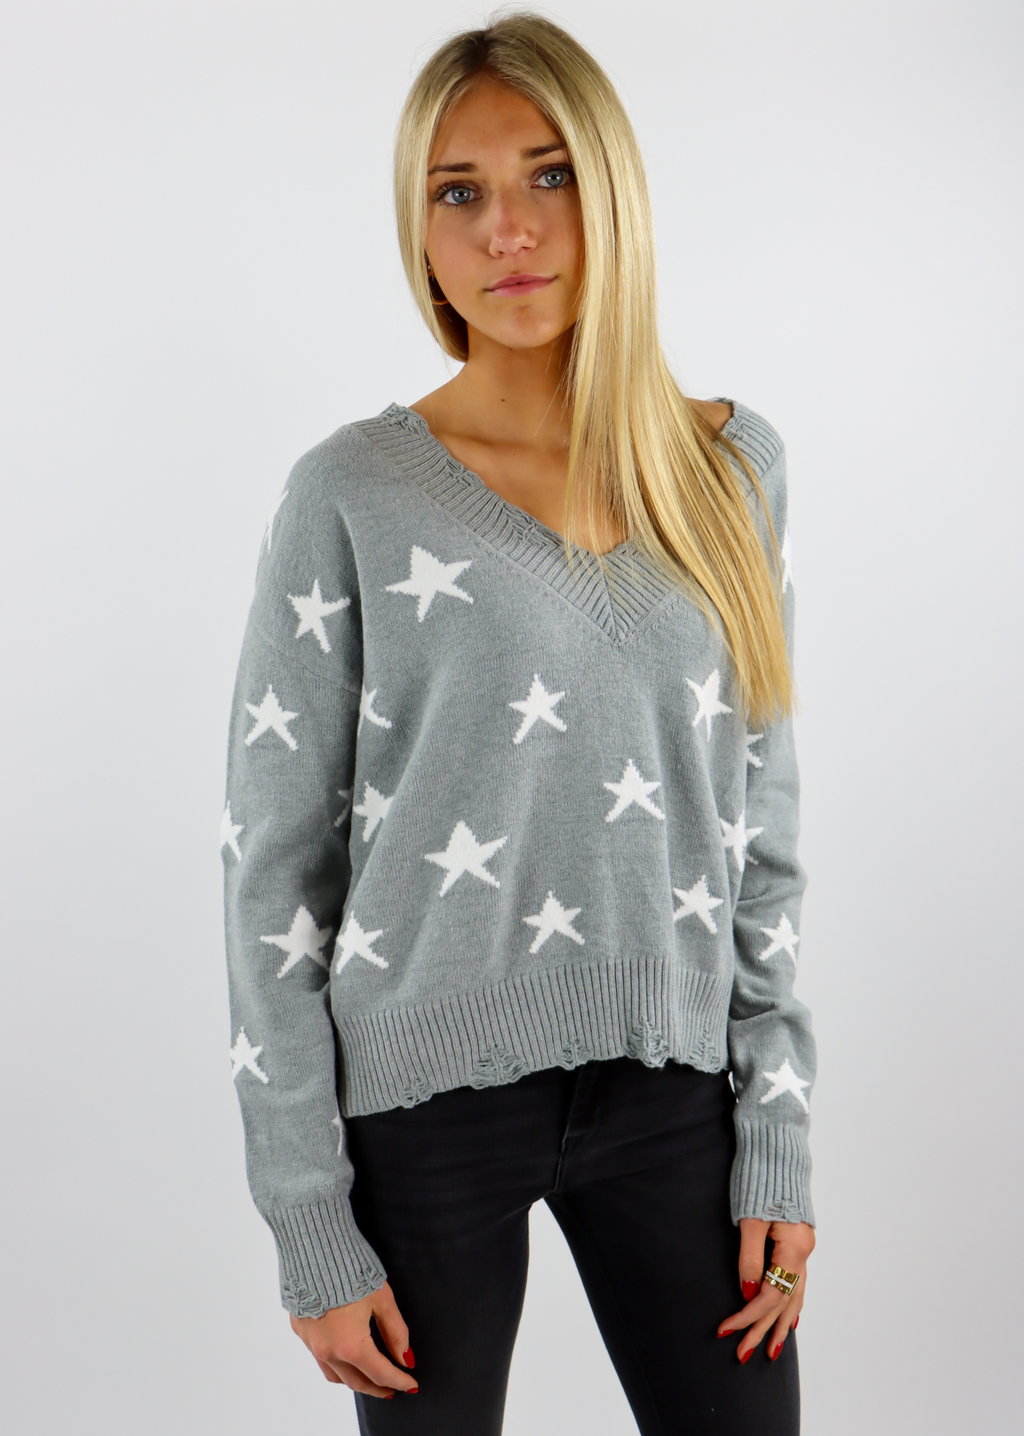 The Sweet Life Sweater ★ Grey Stars - Rock N Rags